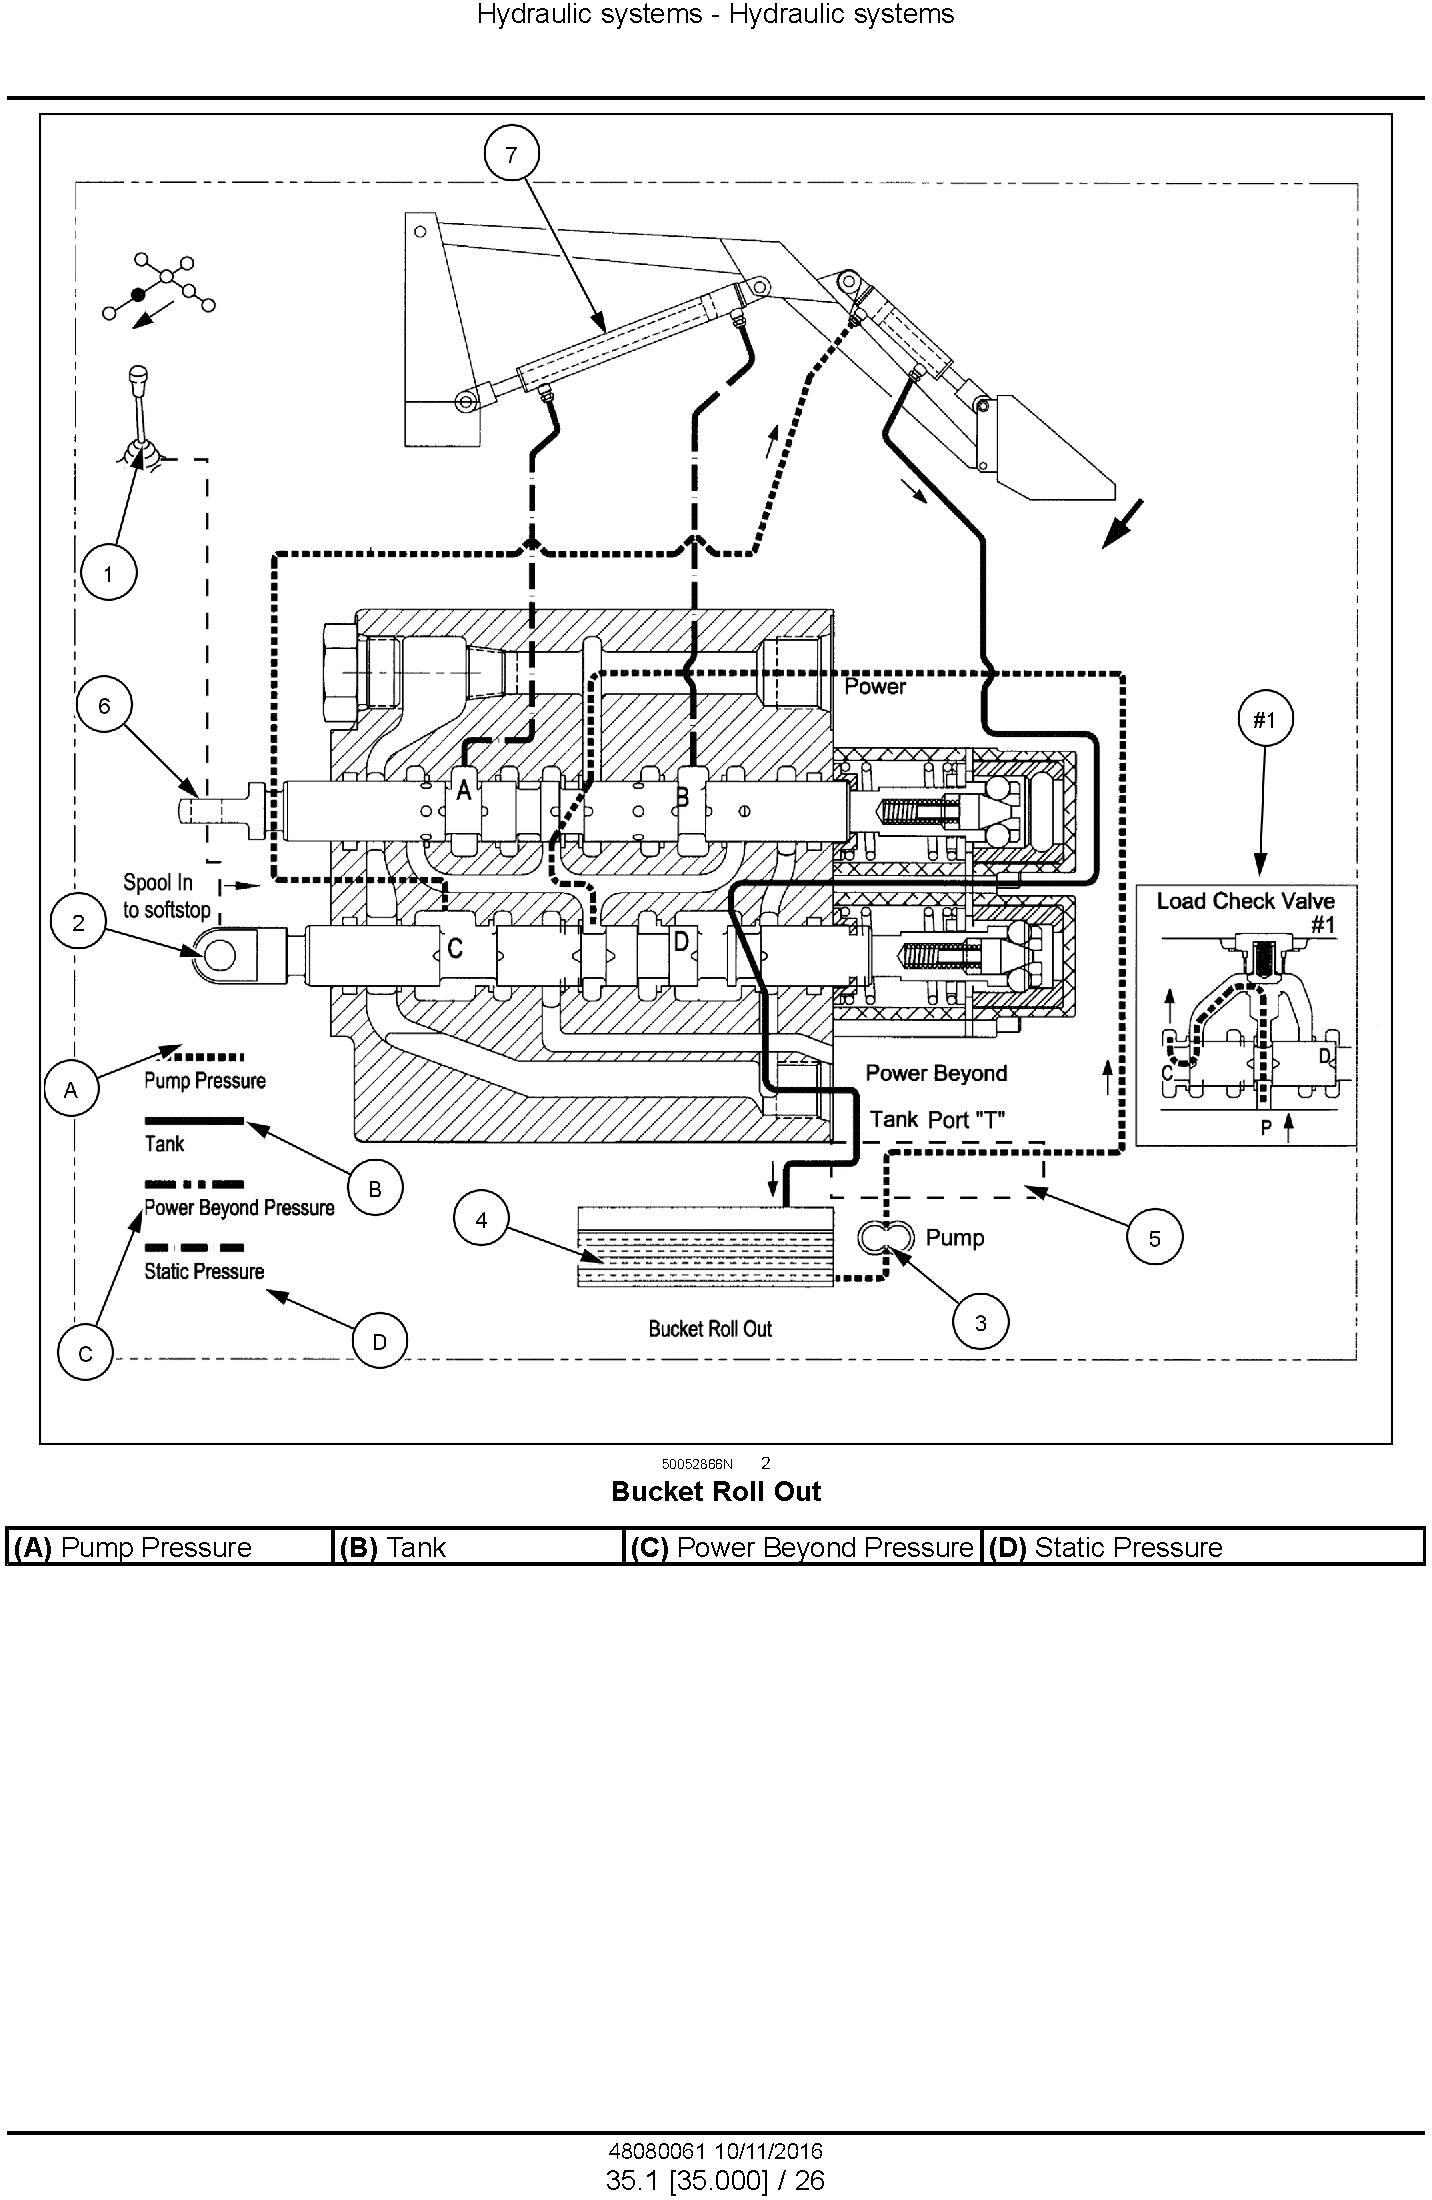 New Holland Boomer 3040 CVT,Boomer 3045 CVT, Boomer 3050 CVT Compact tractor Complete service manual - 3